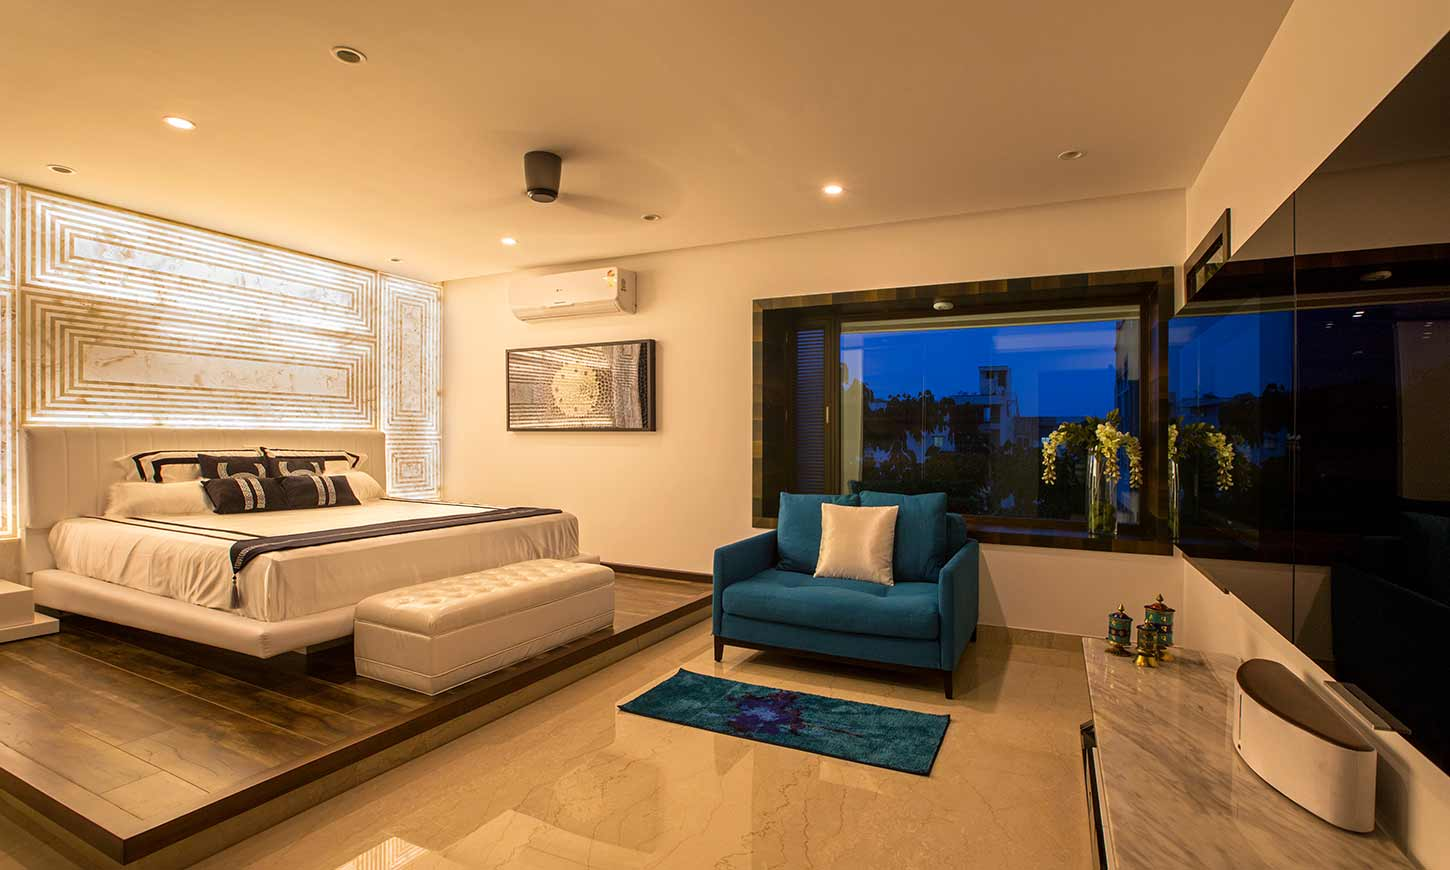 A bedroom designed by best interior design company in bangalore with a white bed and a blue accent sofa